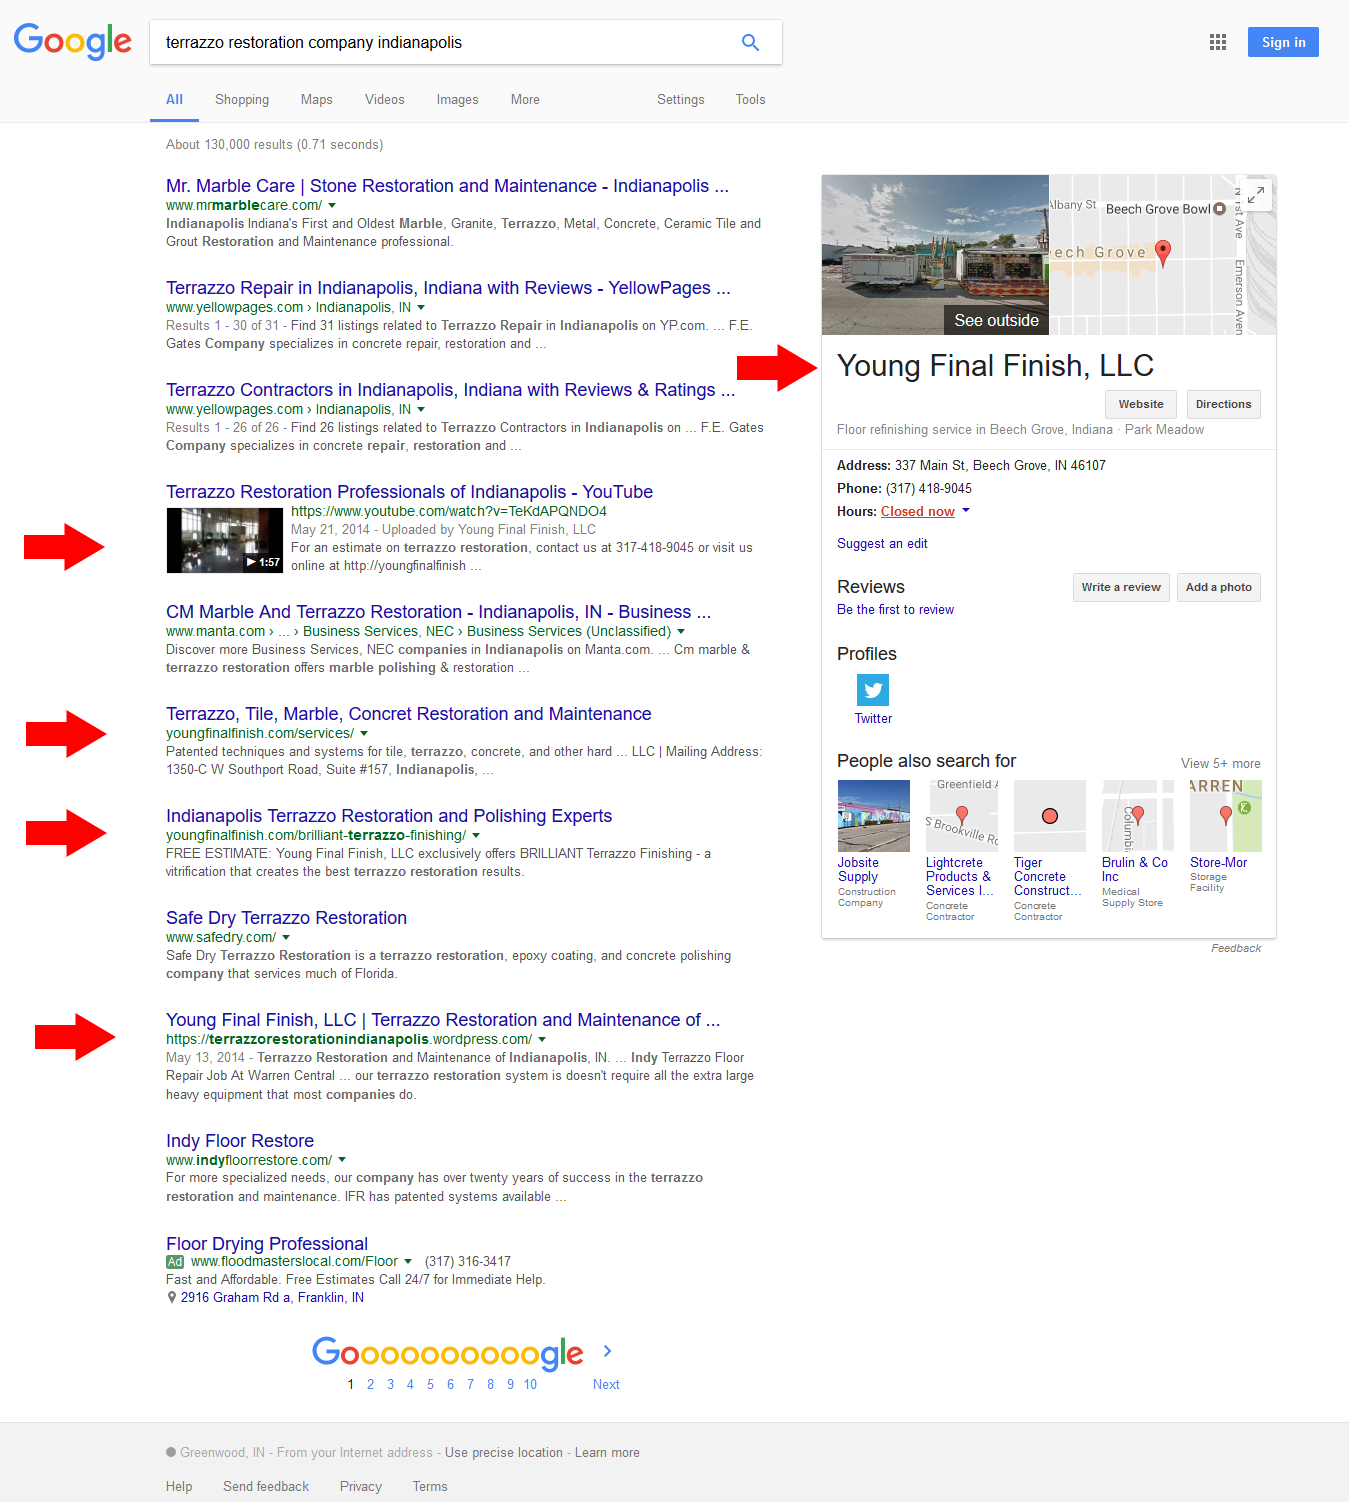 yff-search-engine-optimization-results